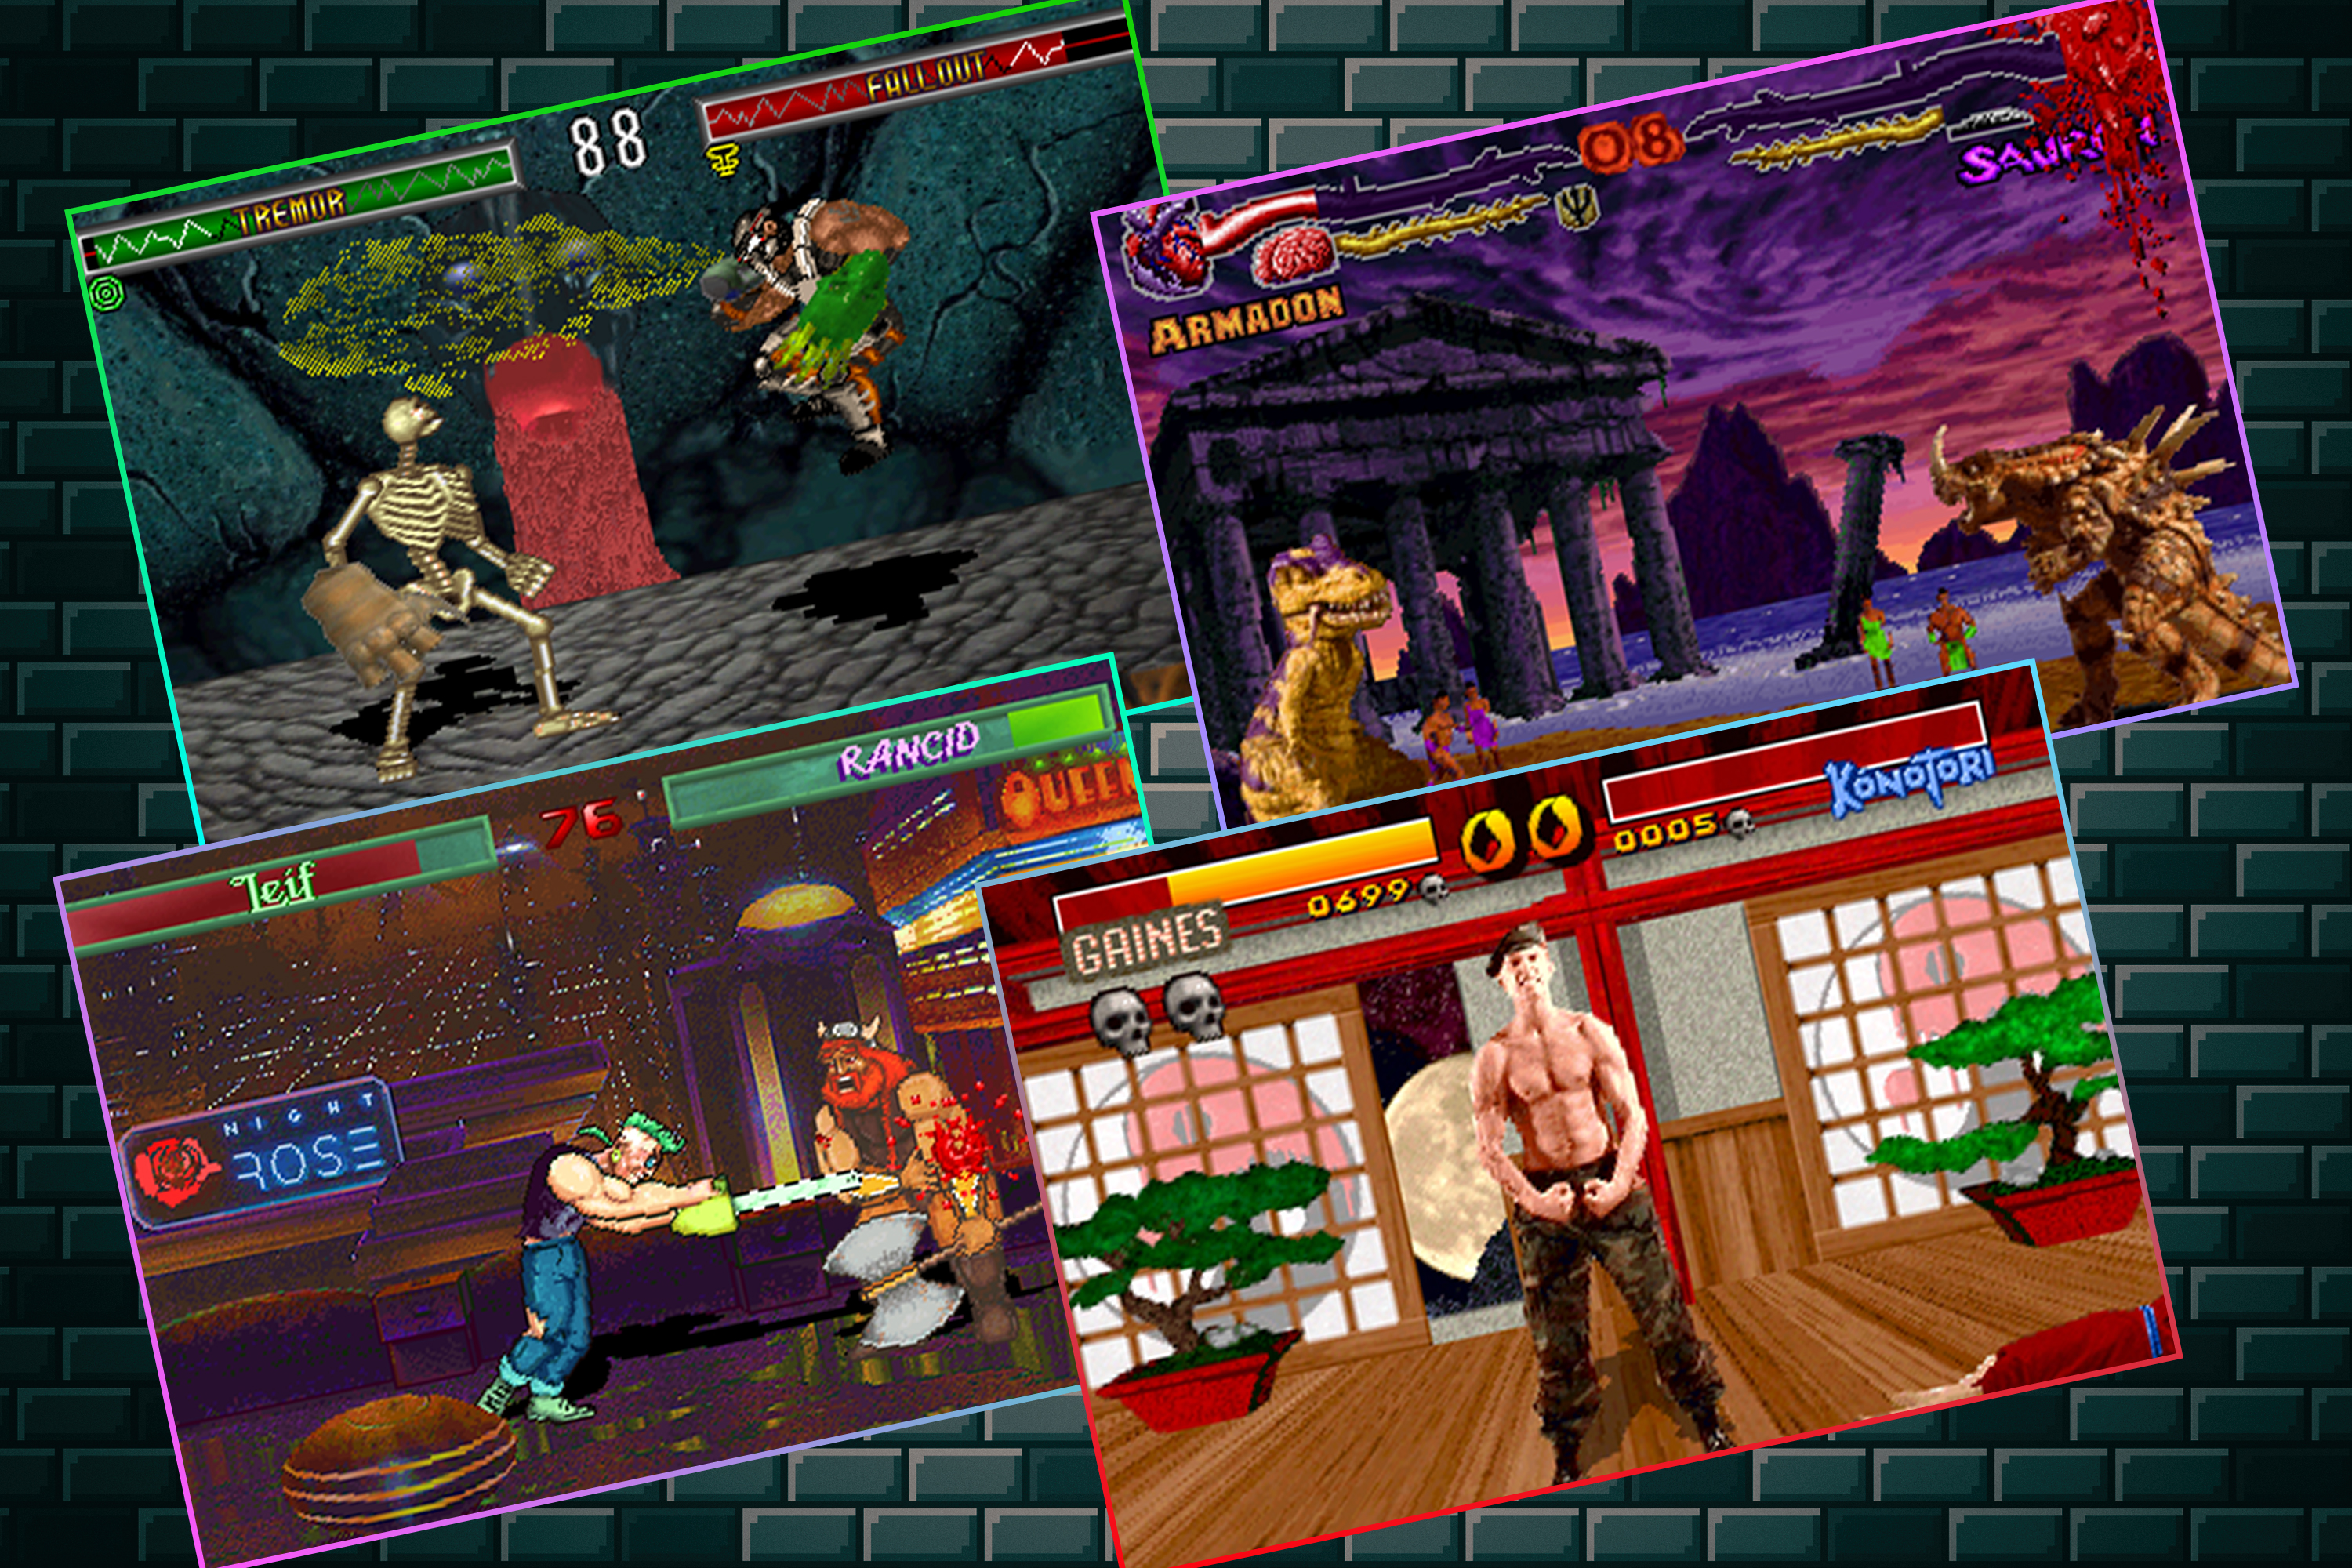 Graphic with four screenshots from various ripoffs of the Mortal Kombat video game